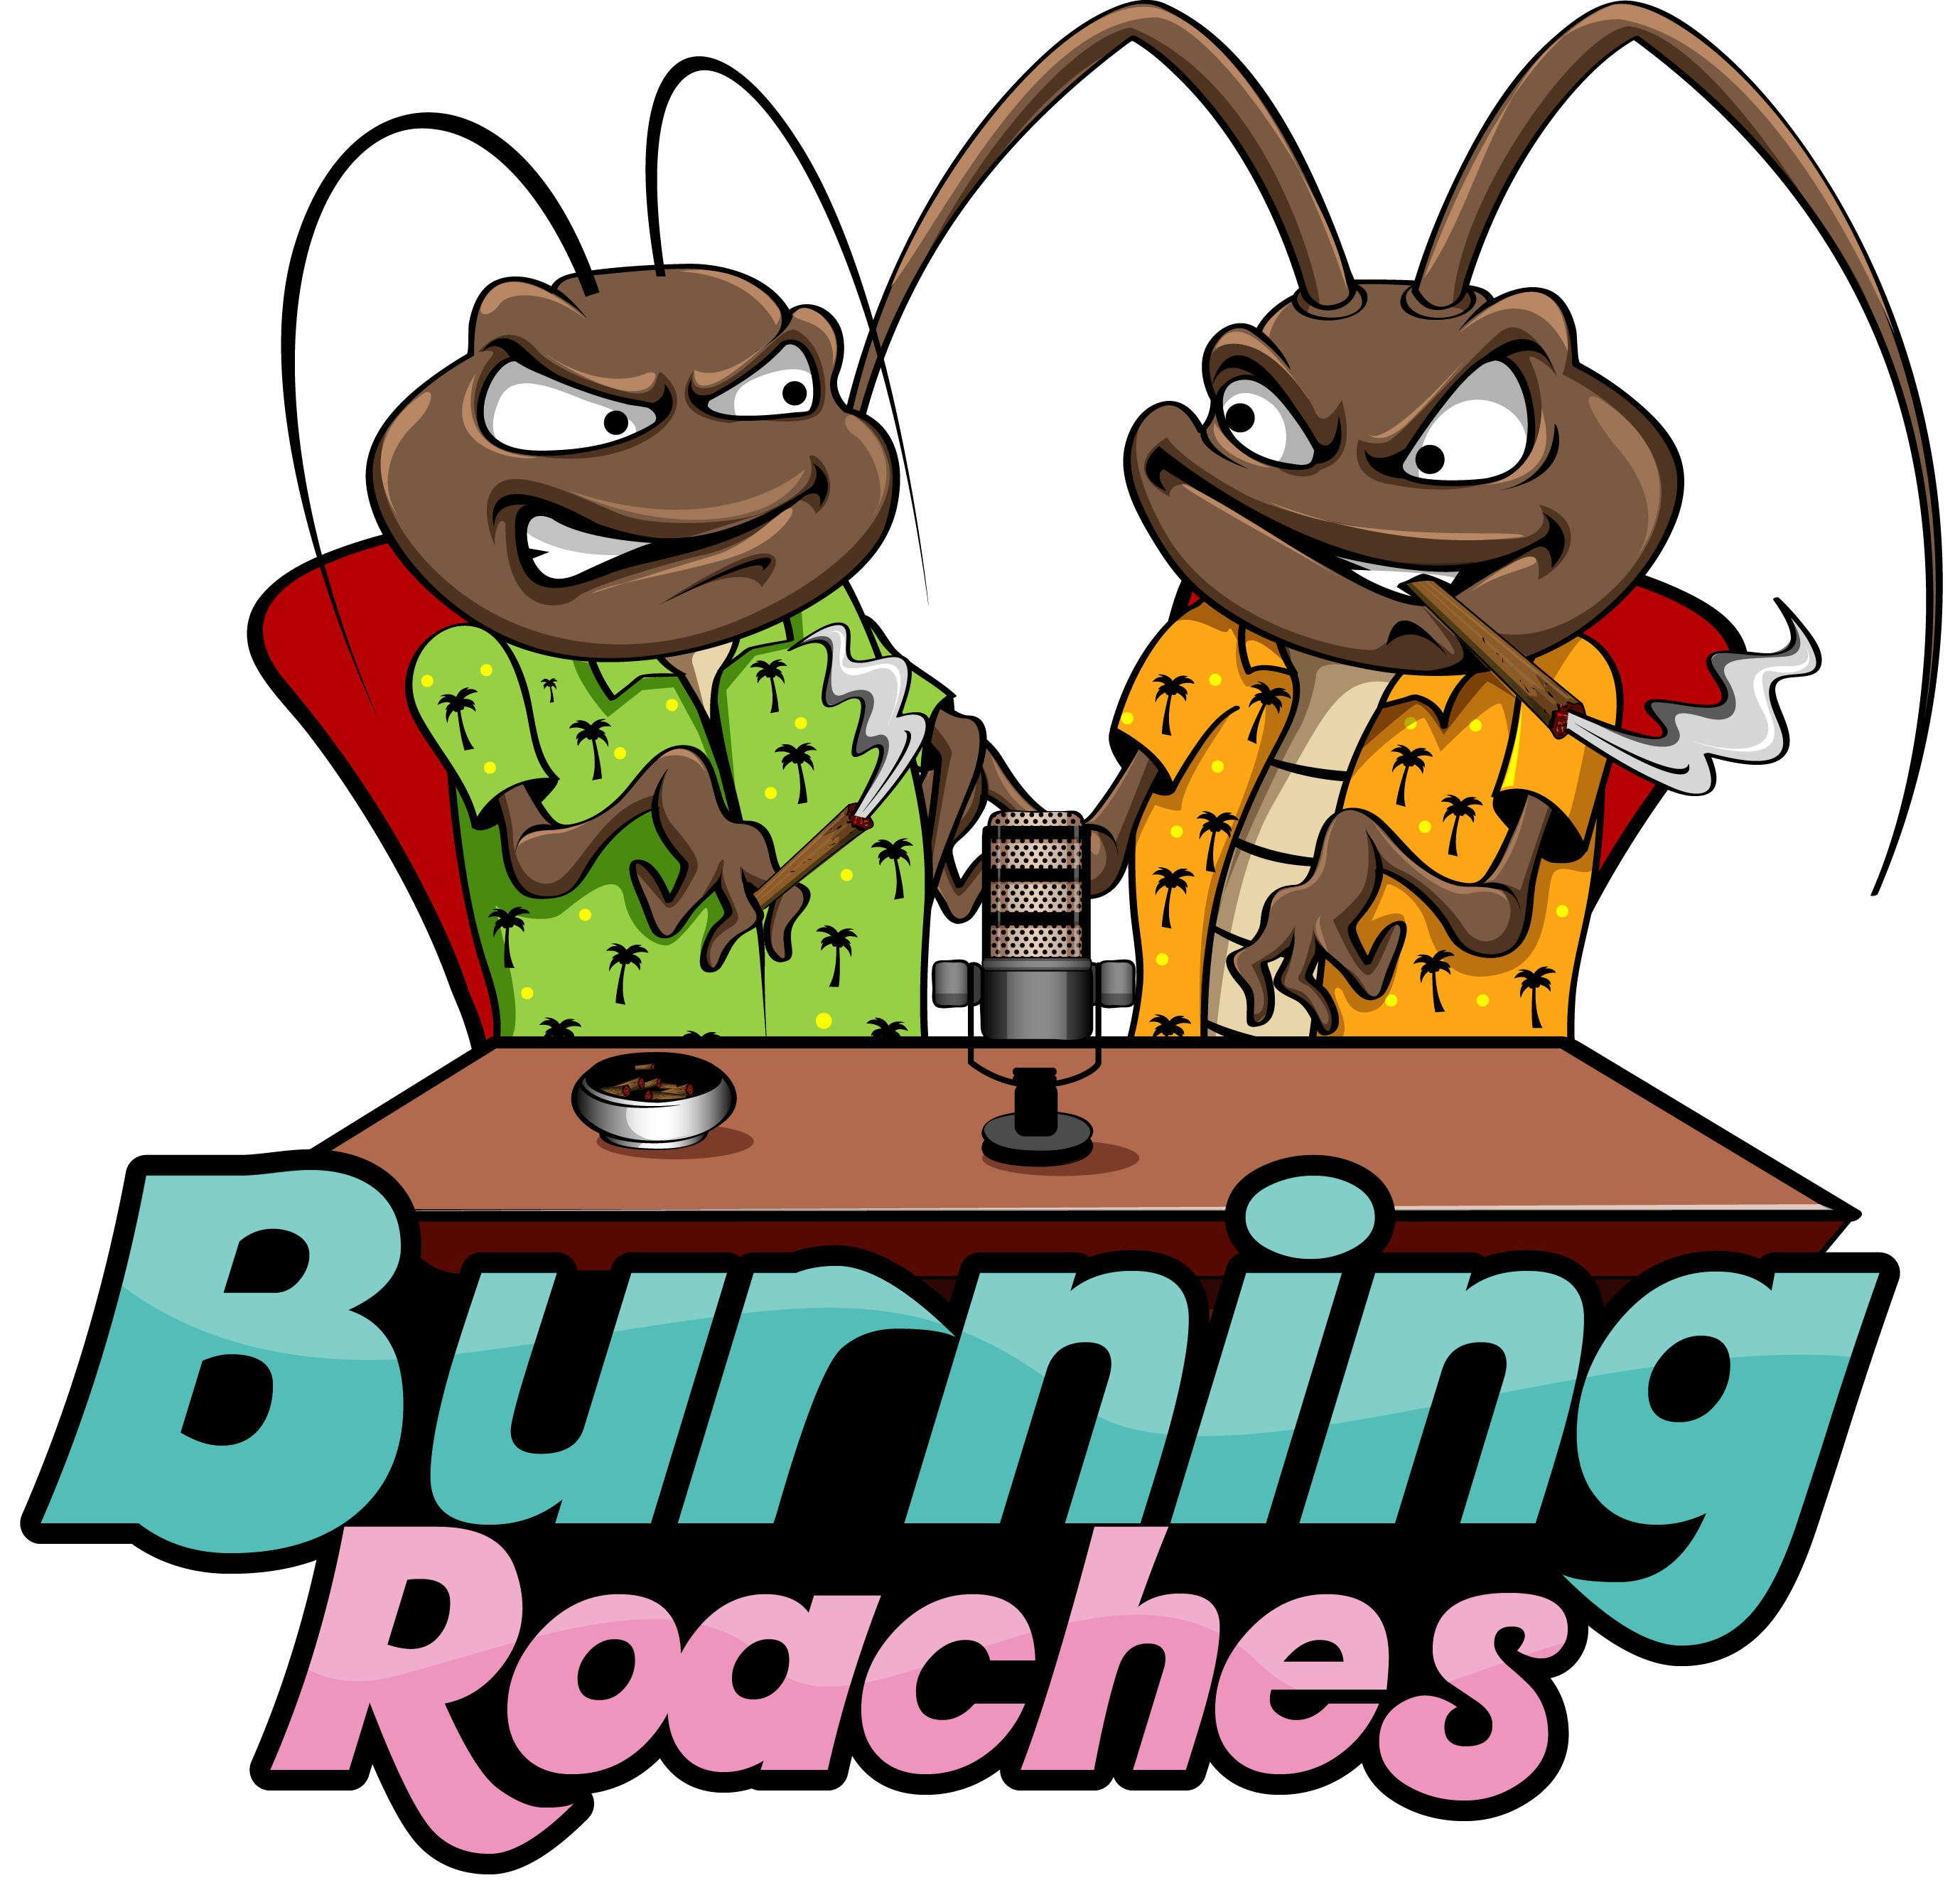 The Burning Roaches Podcast